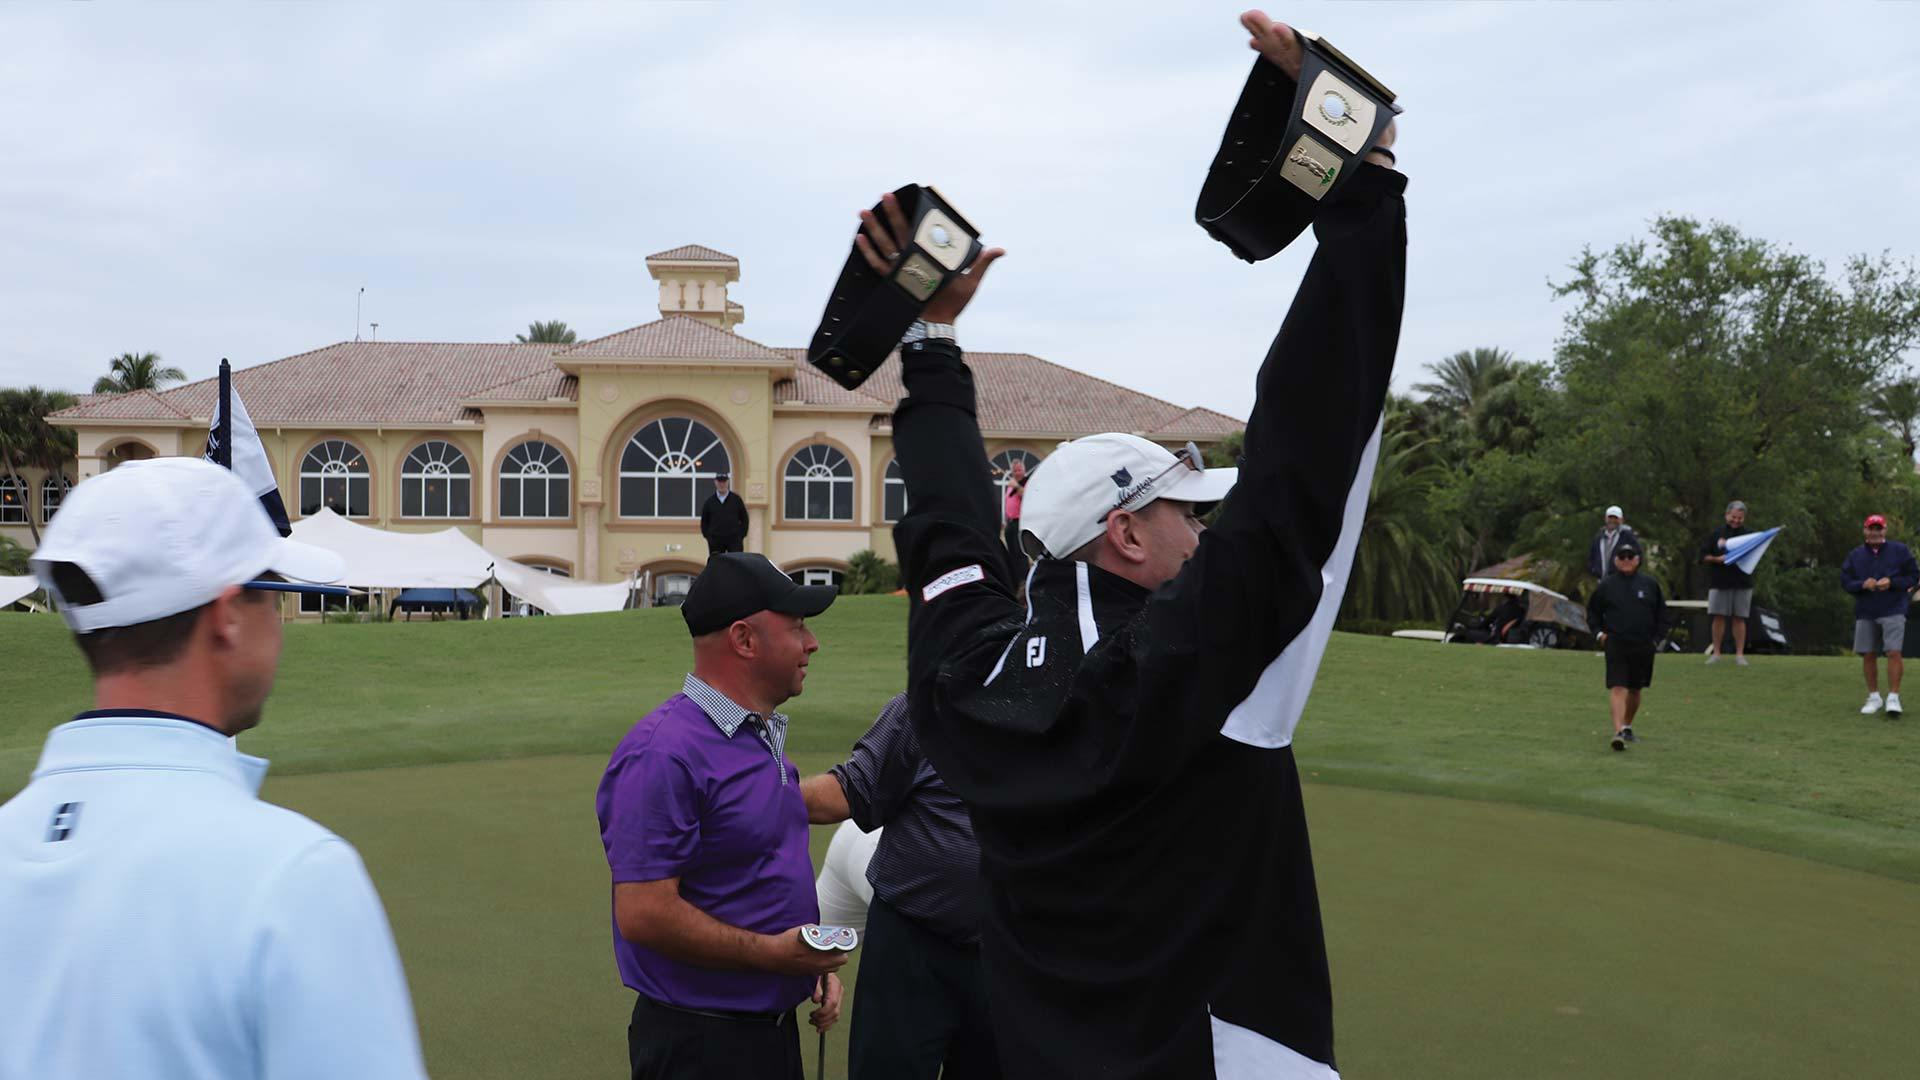 mizner-country-club-delray-beach-golf-images-22